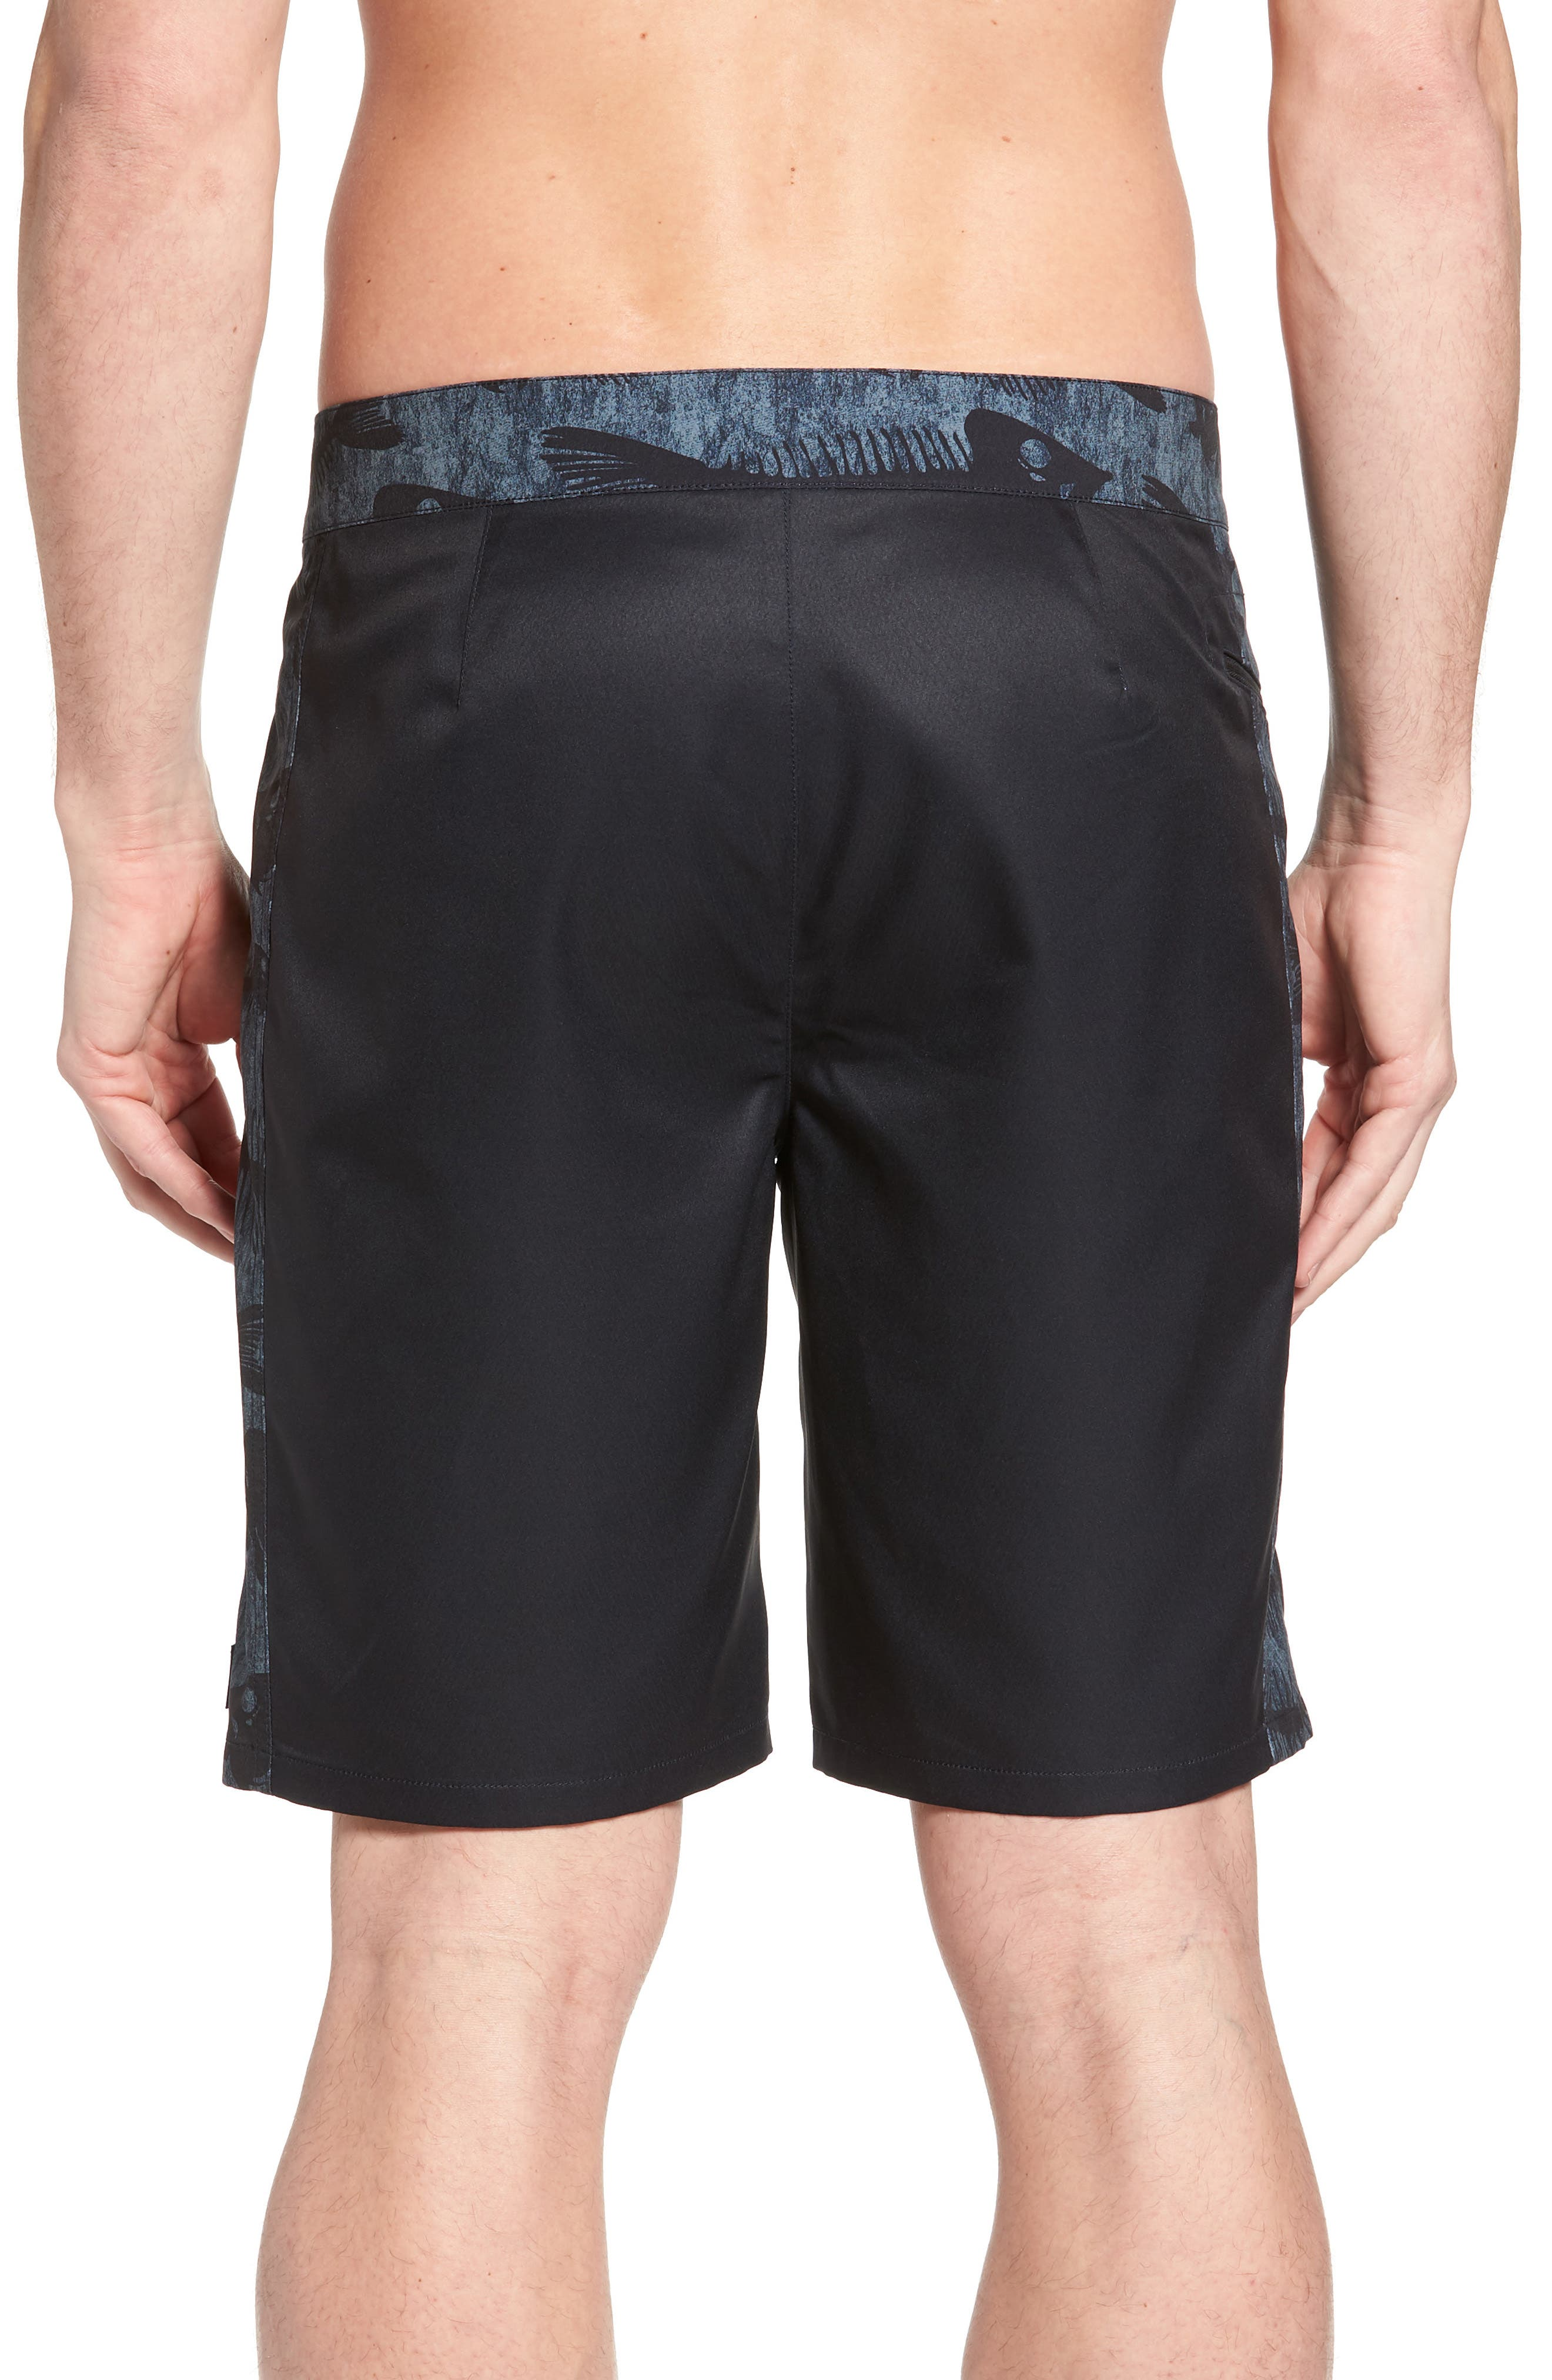 Bonefish Board Shorts,                             Alternate thumbnail 2, color,                             Charcoal Grey